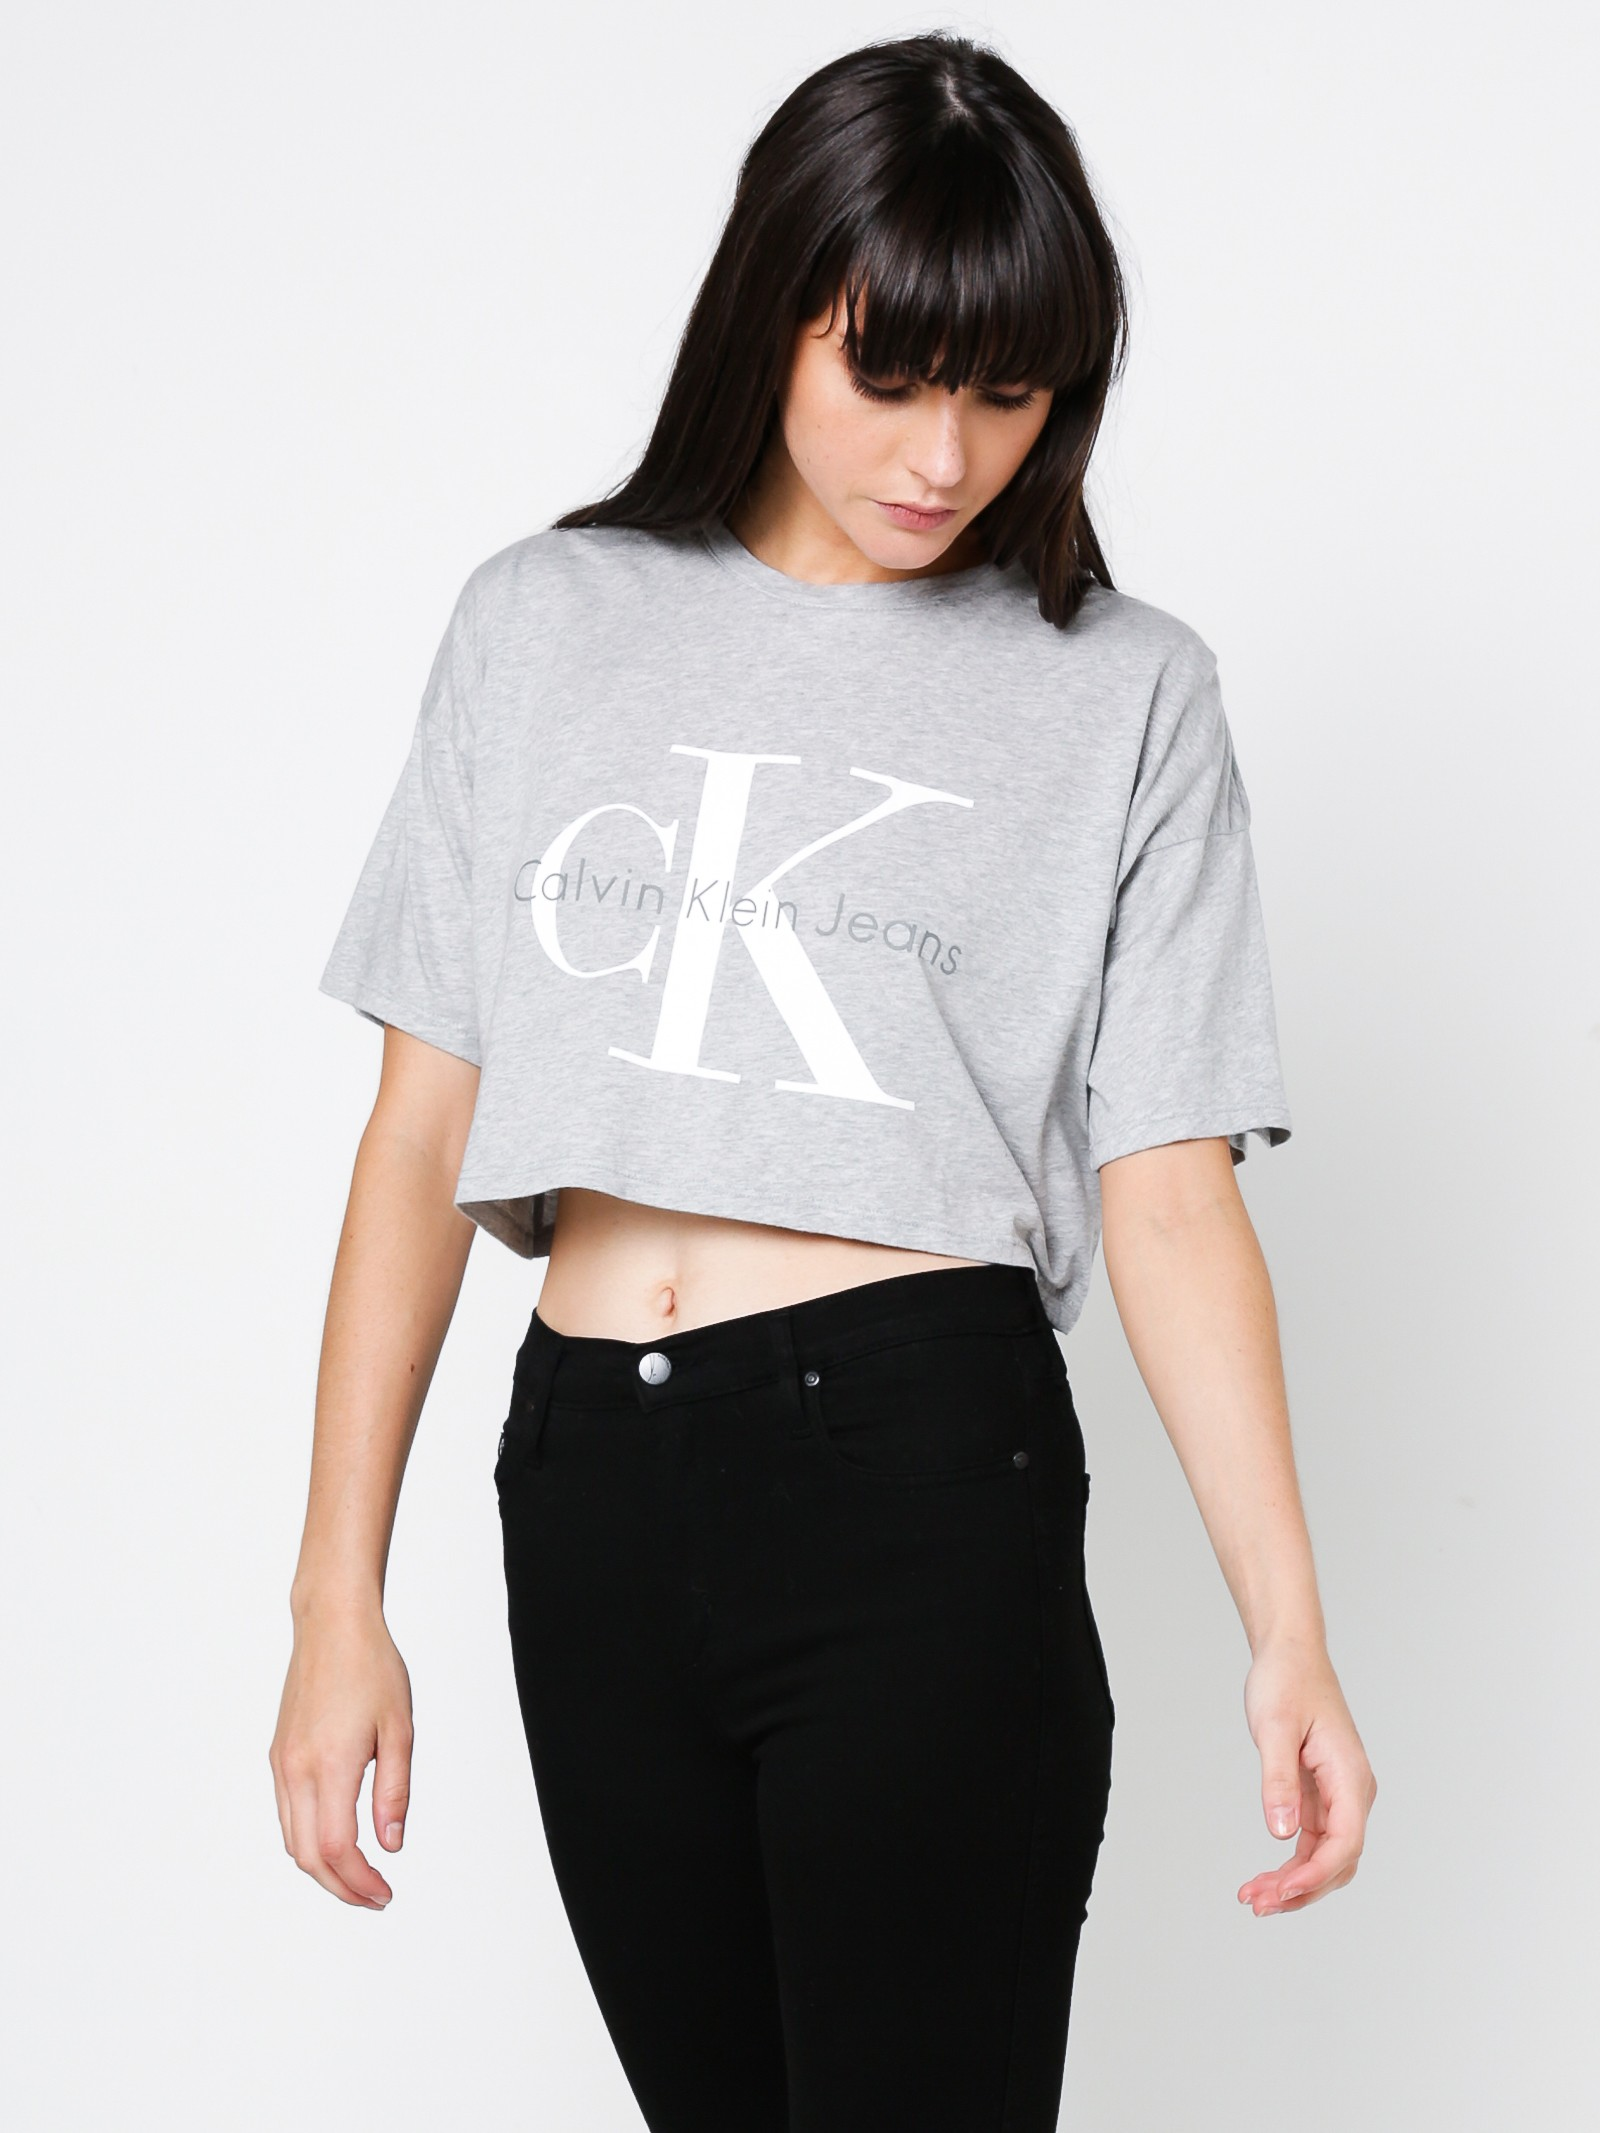 calvin klein shirt t shirts design concept. Black Bedroom Furniture Sets. Home Design Ideas